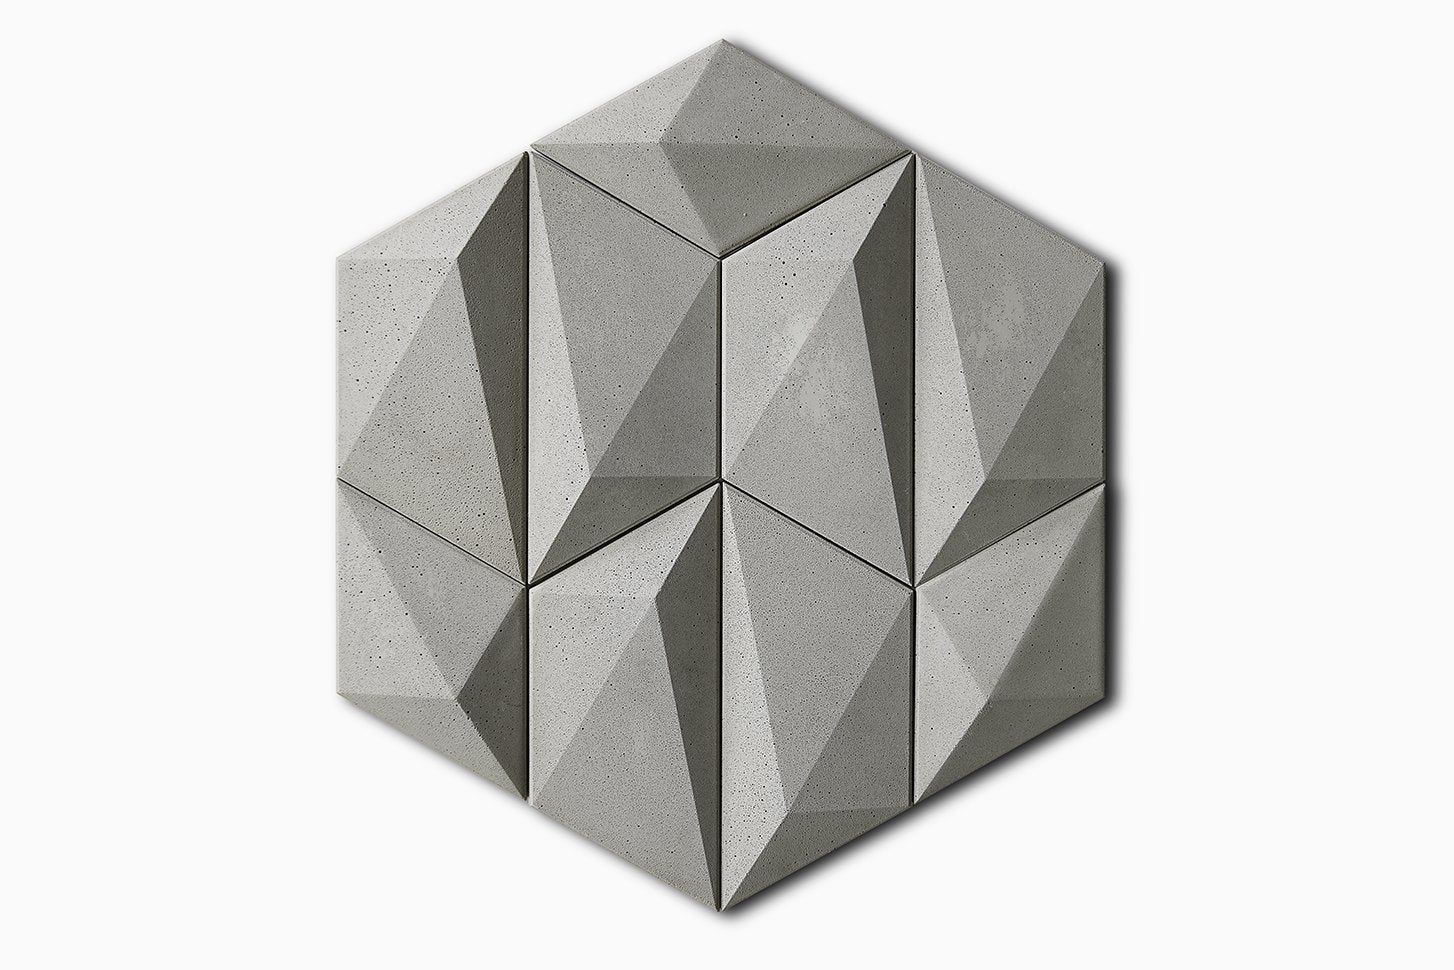 SAN-S Concrete Decorative Wall Tile, Wall Tile - Luvurwall